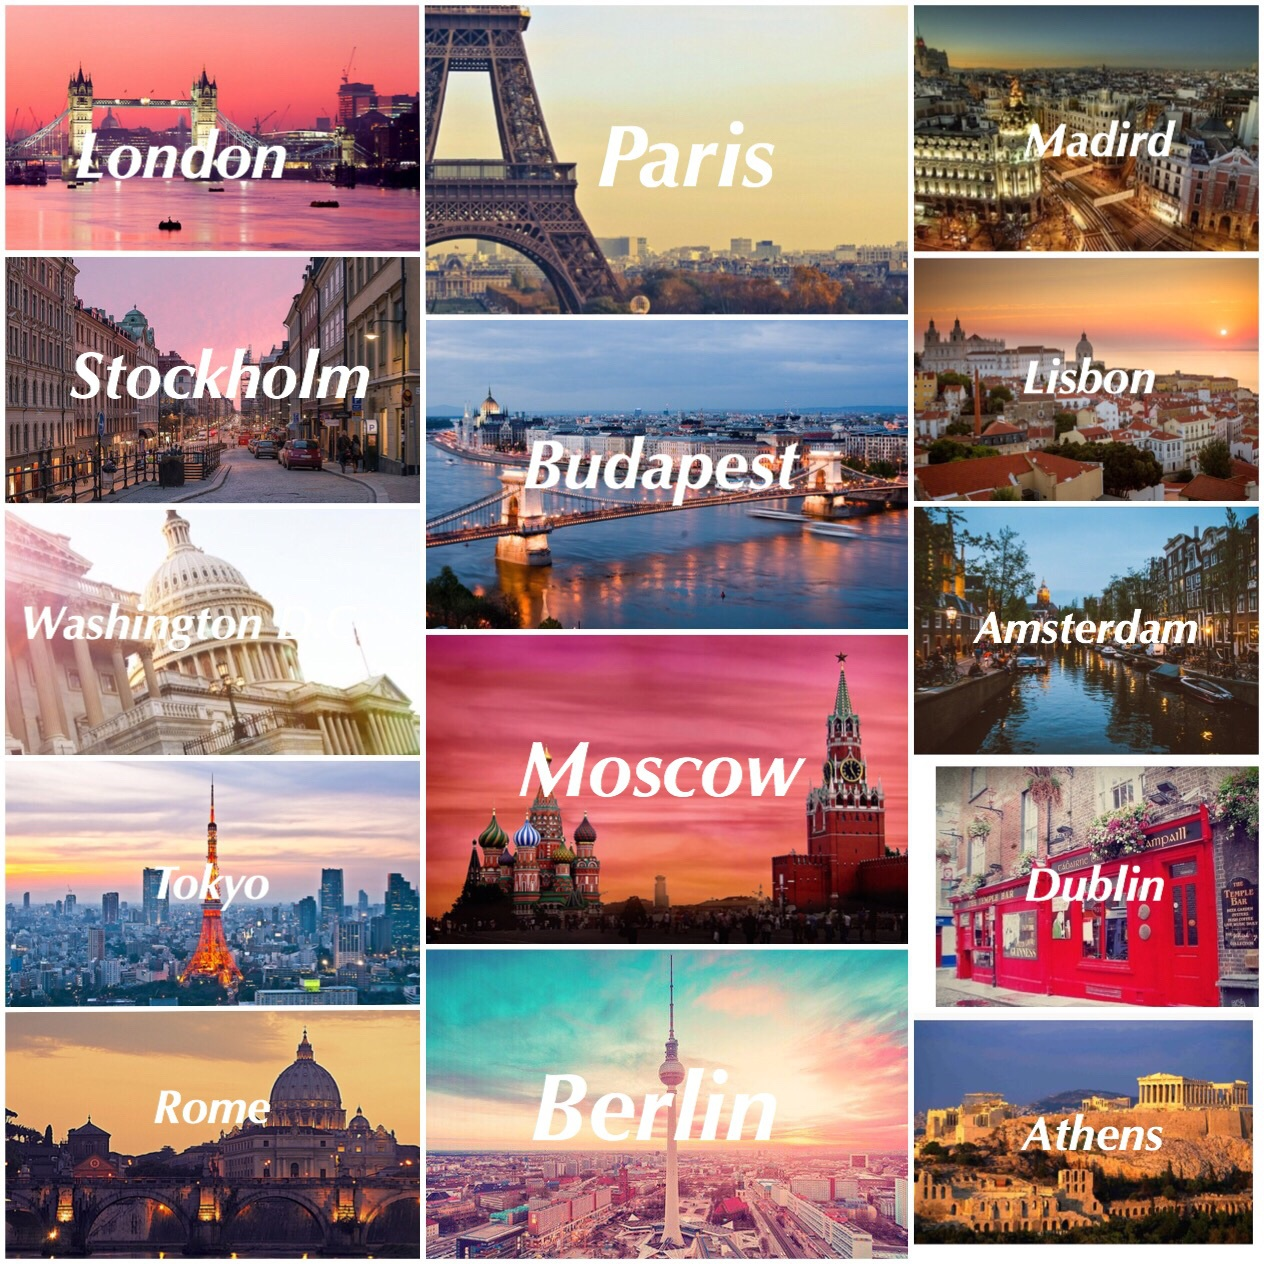 america, amsterdam, asia, berlin, budapest, capitals, cities, city, dublin, europe, frence, germany, hungary, irland, lisbon, london, madrid, moscow, paris, rome, russia, skyline, spain, stockholm, tokyo, travel, uk, usa, washington, world, ul, frenche